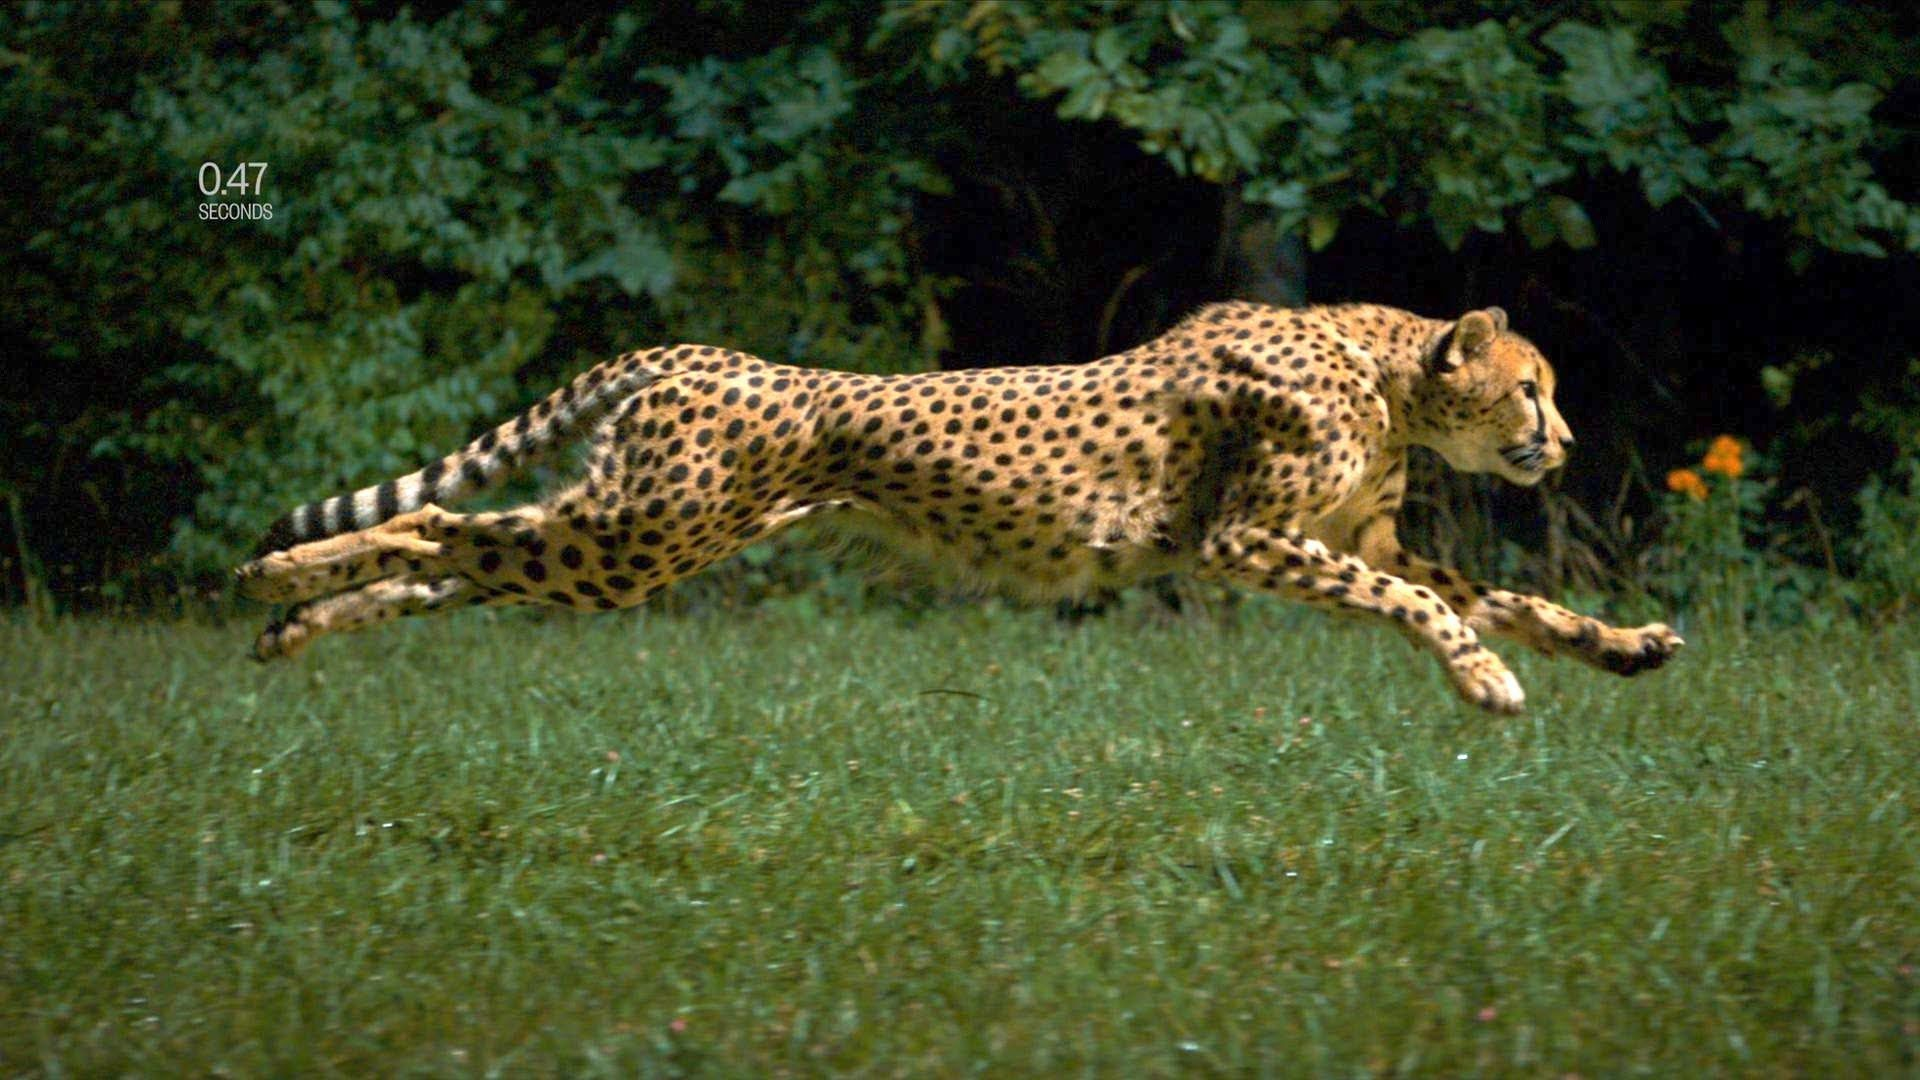 World S Fastest Runner Cheetah Video From National Geographic